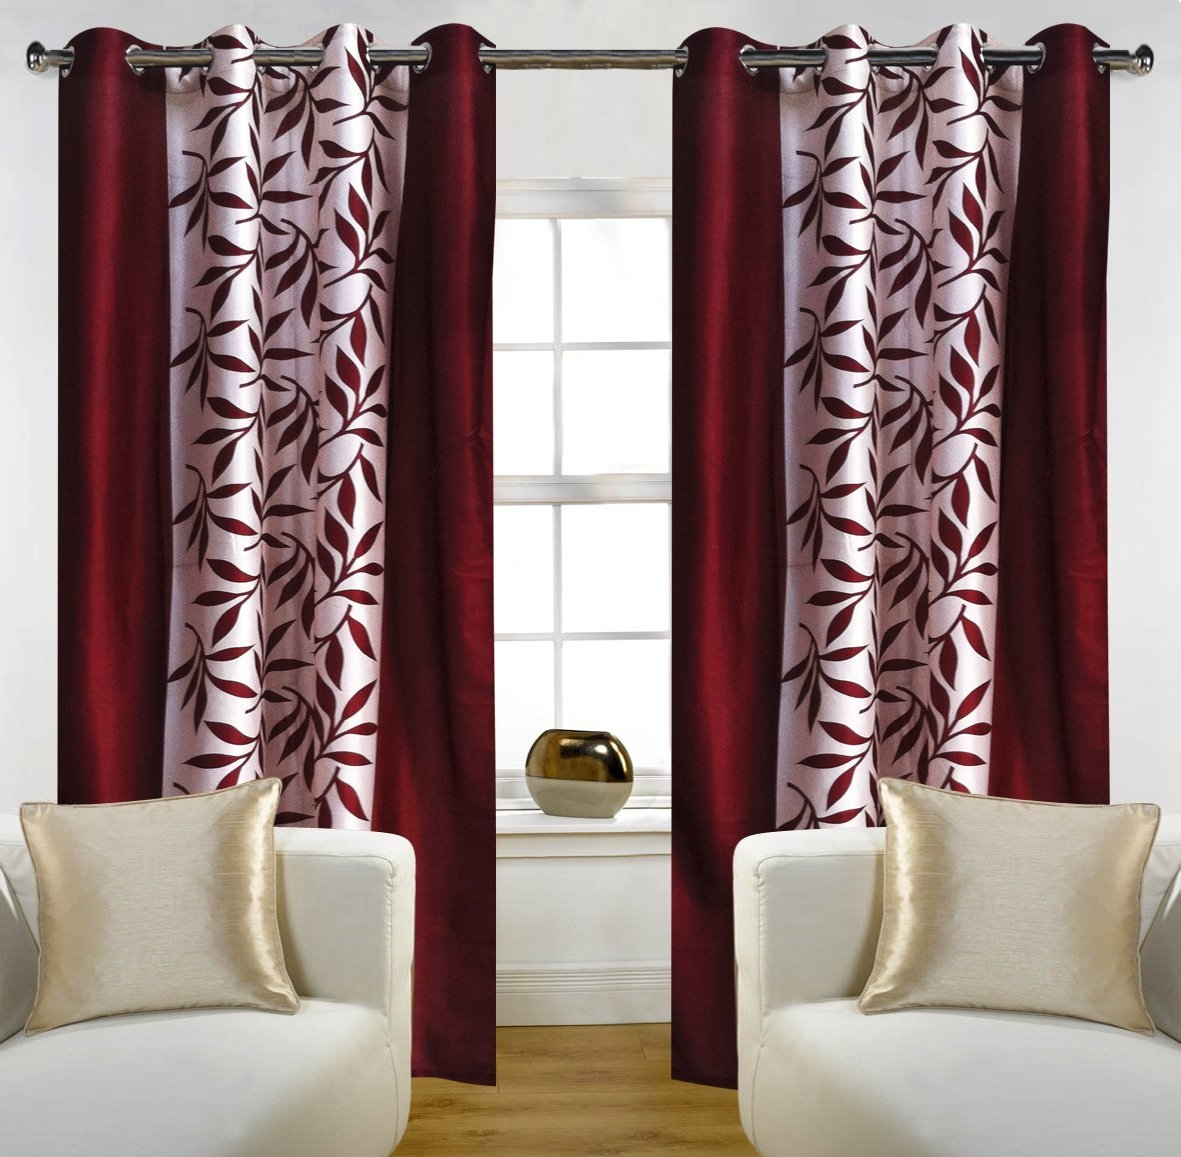 Curtains Buy Curtains Online At Low Prices In India Amazonin Within Single Curtains For Doors (Image 6 of 15)